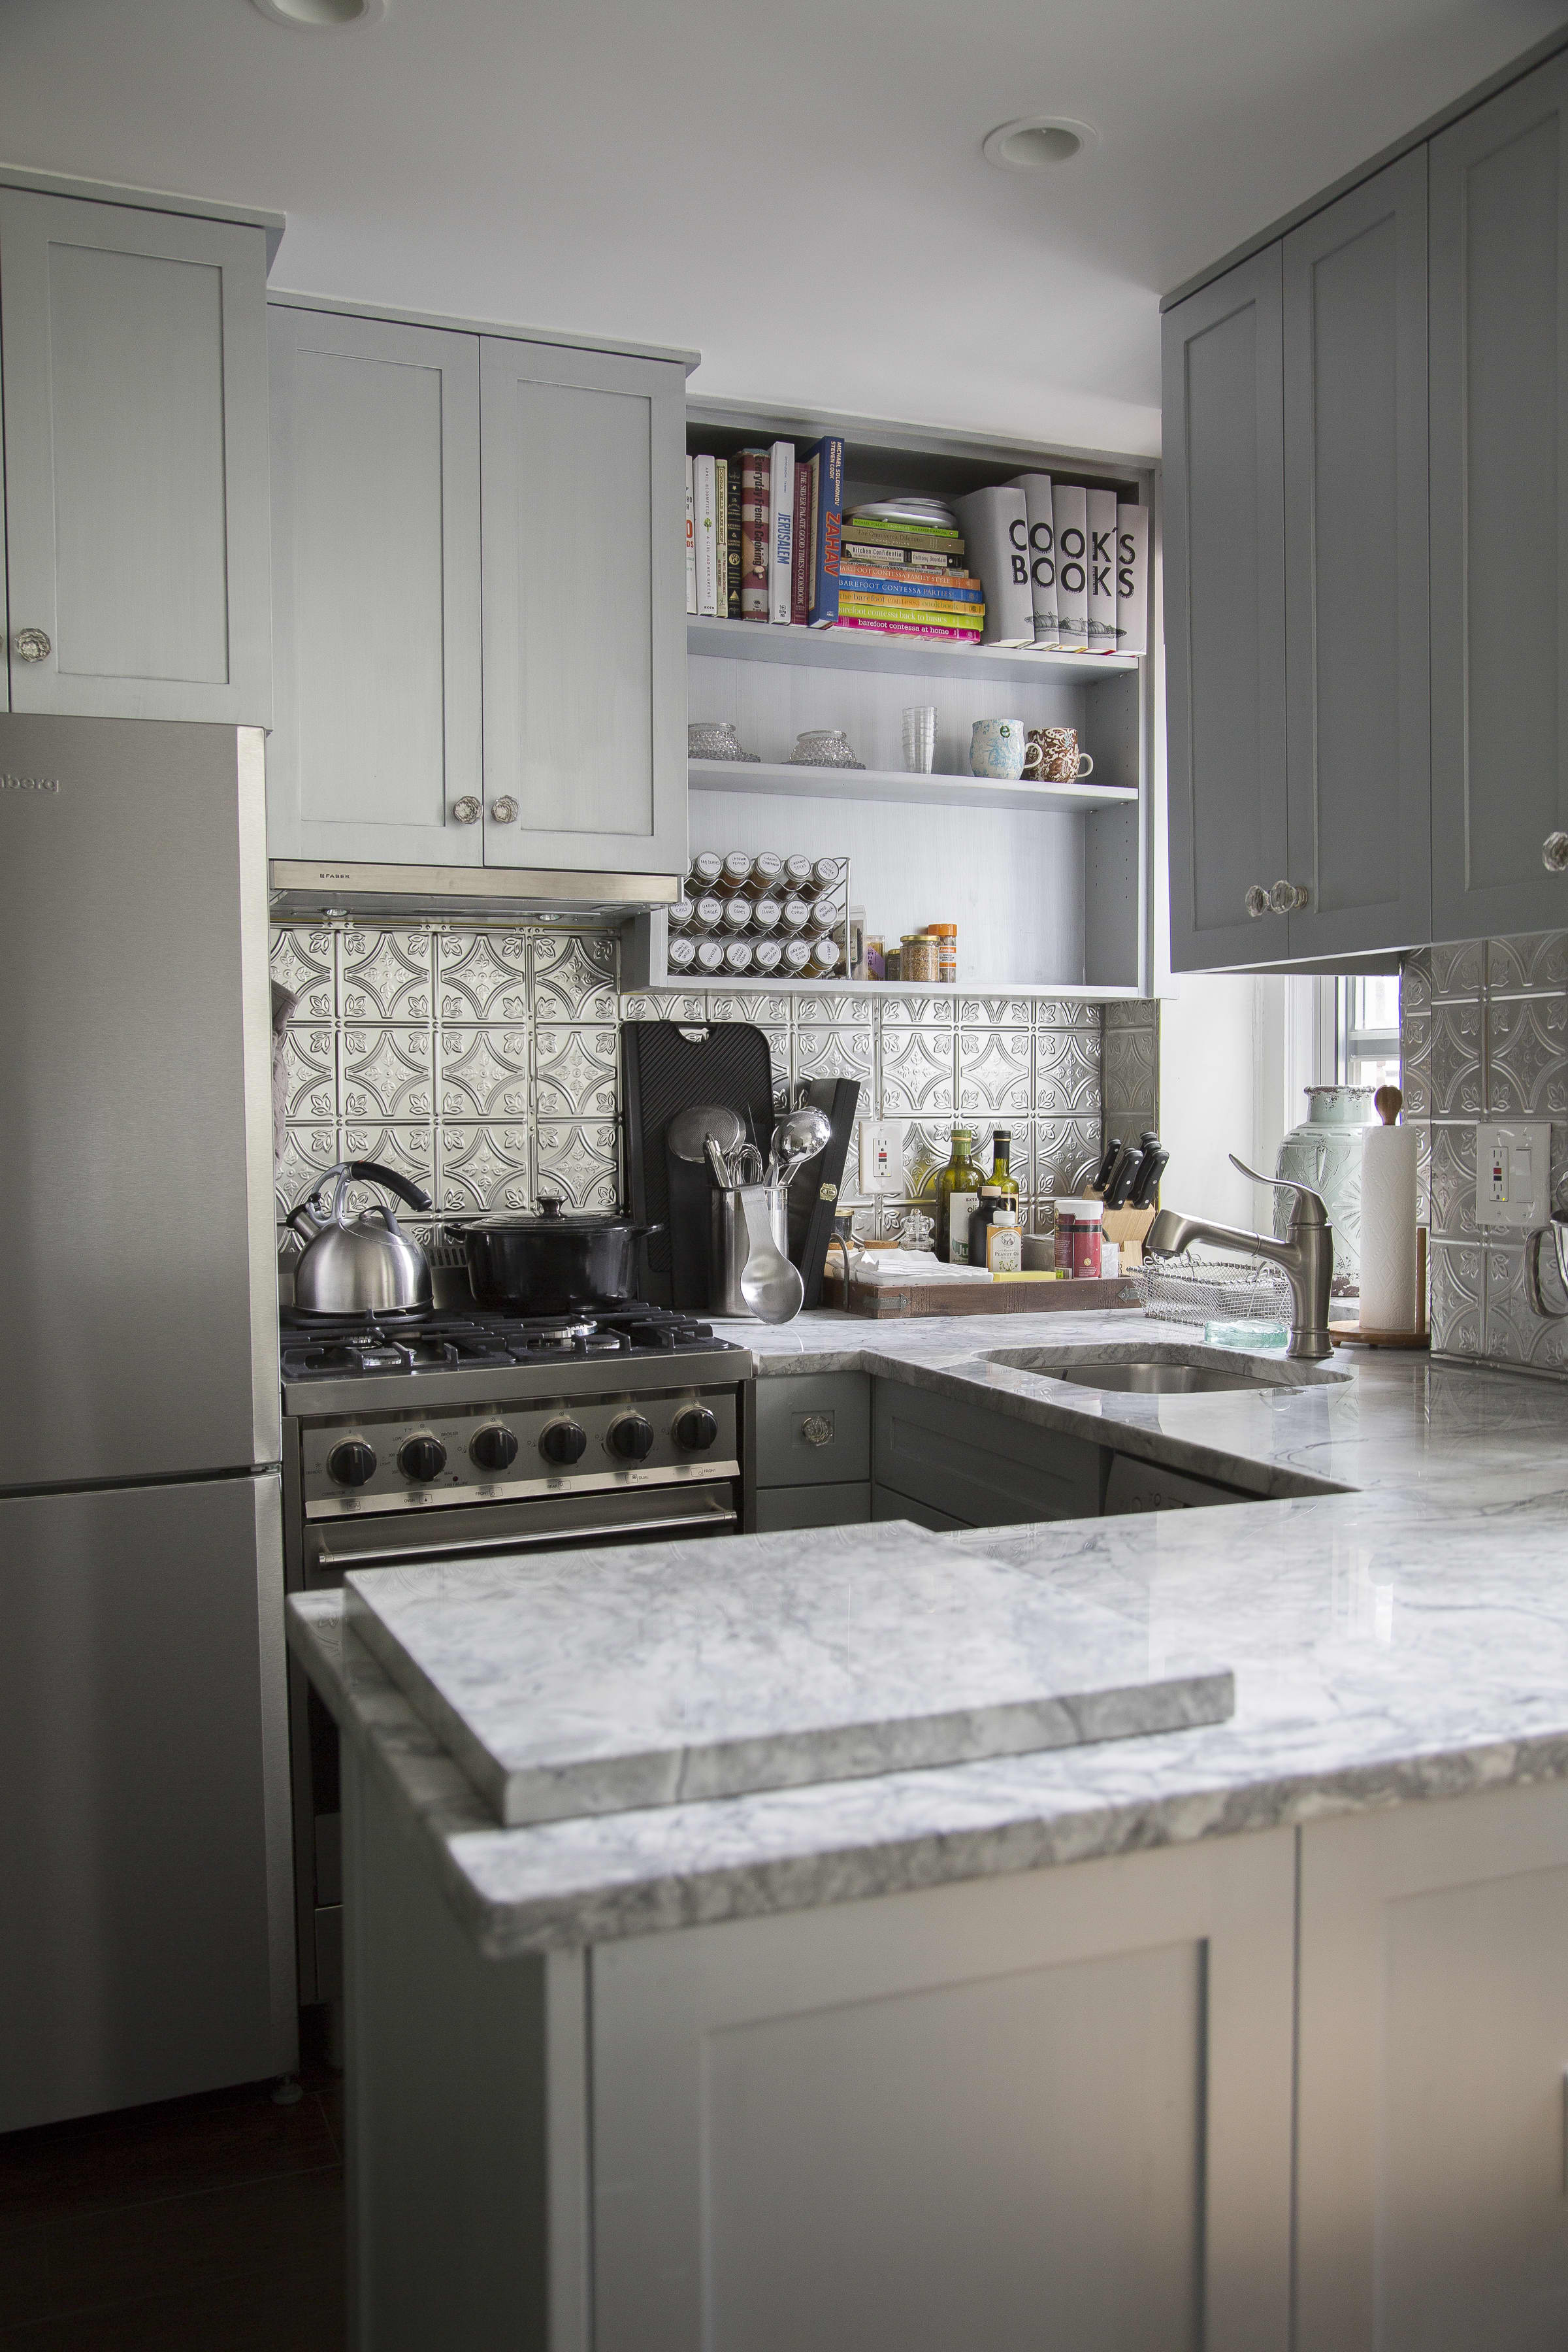 Let's Settle This: Are Single Bowl Kitchen Sinks Better